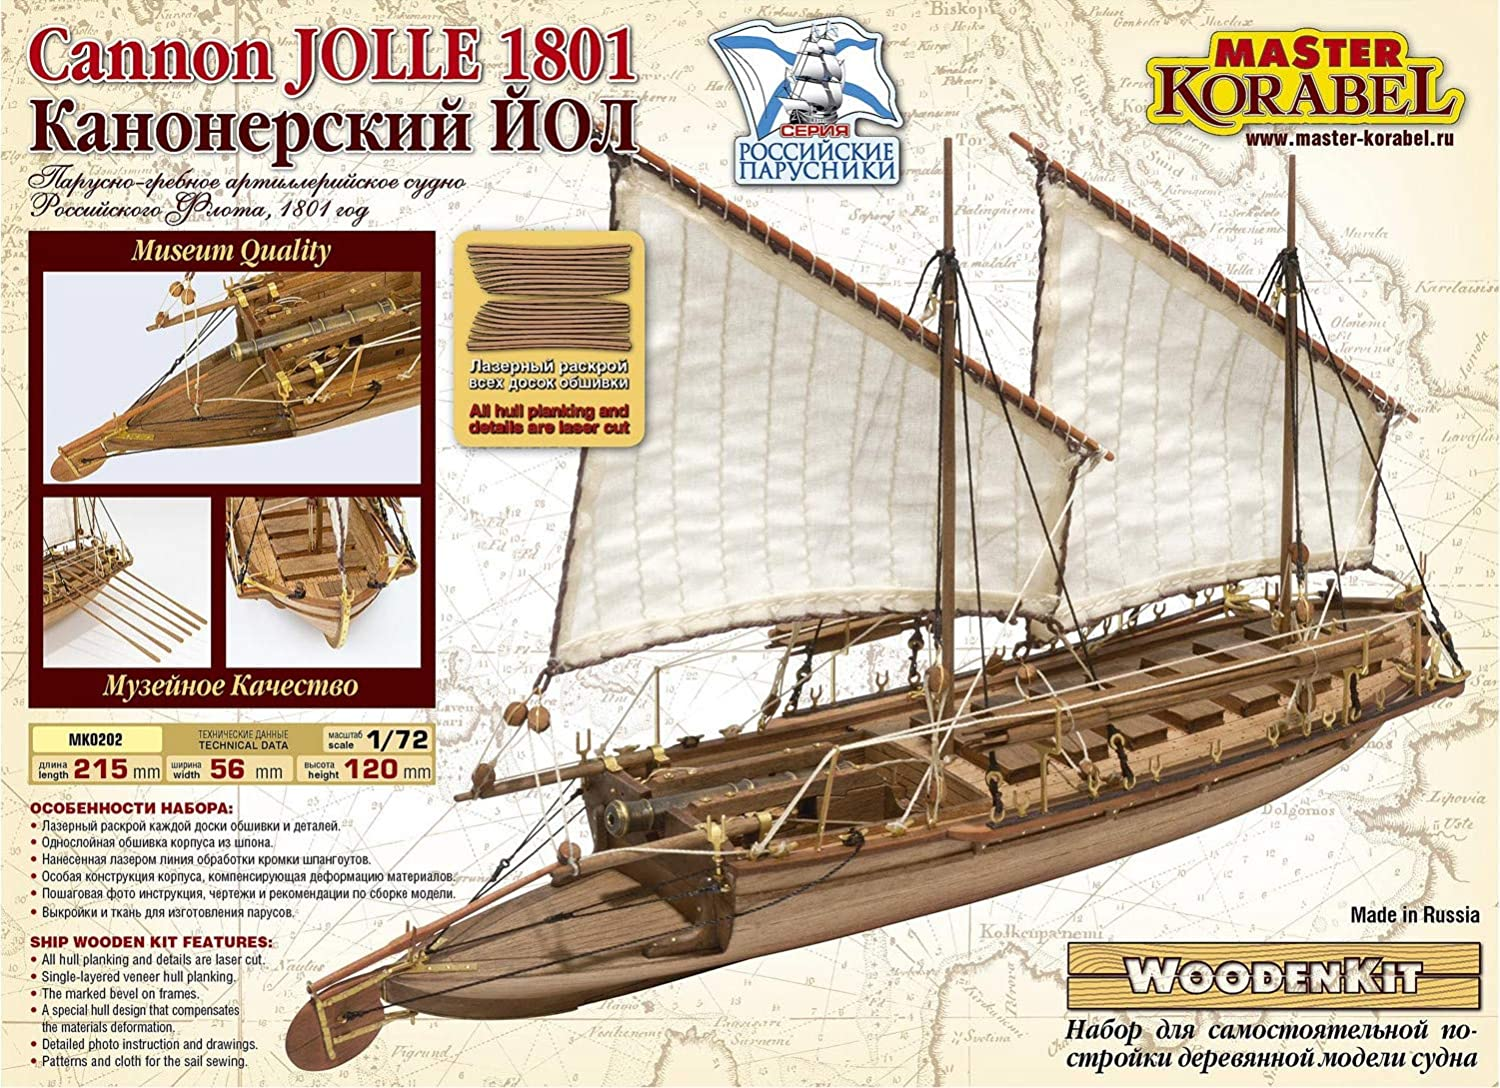 Master Korabel Chicago Mall Cannon excellence Jolle